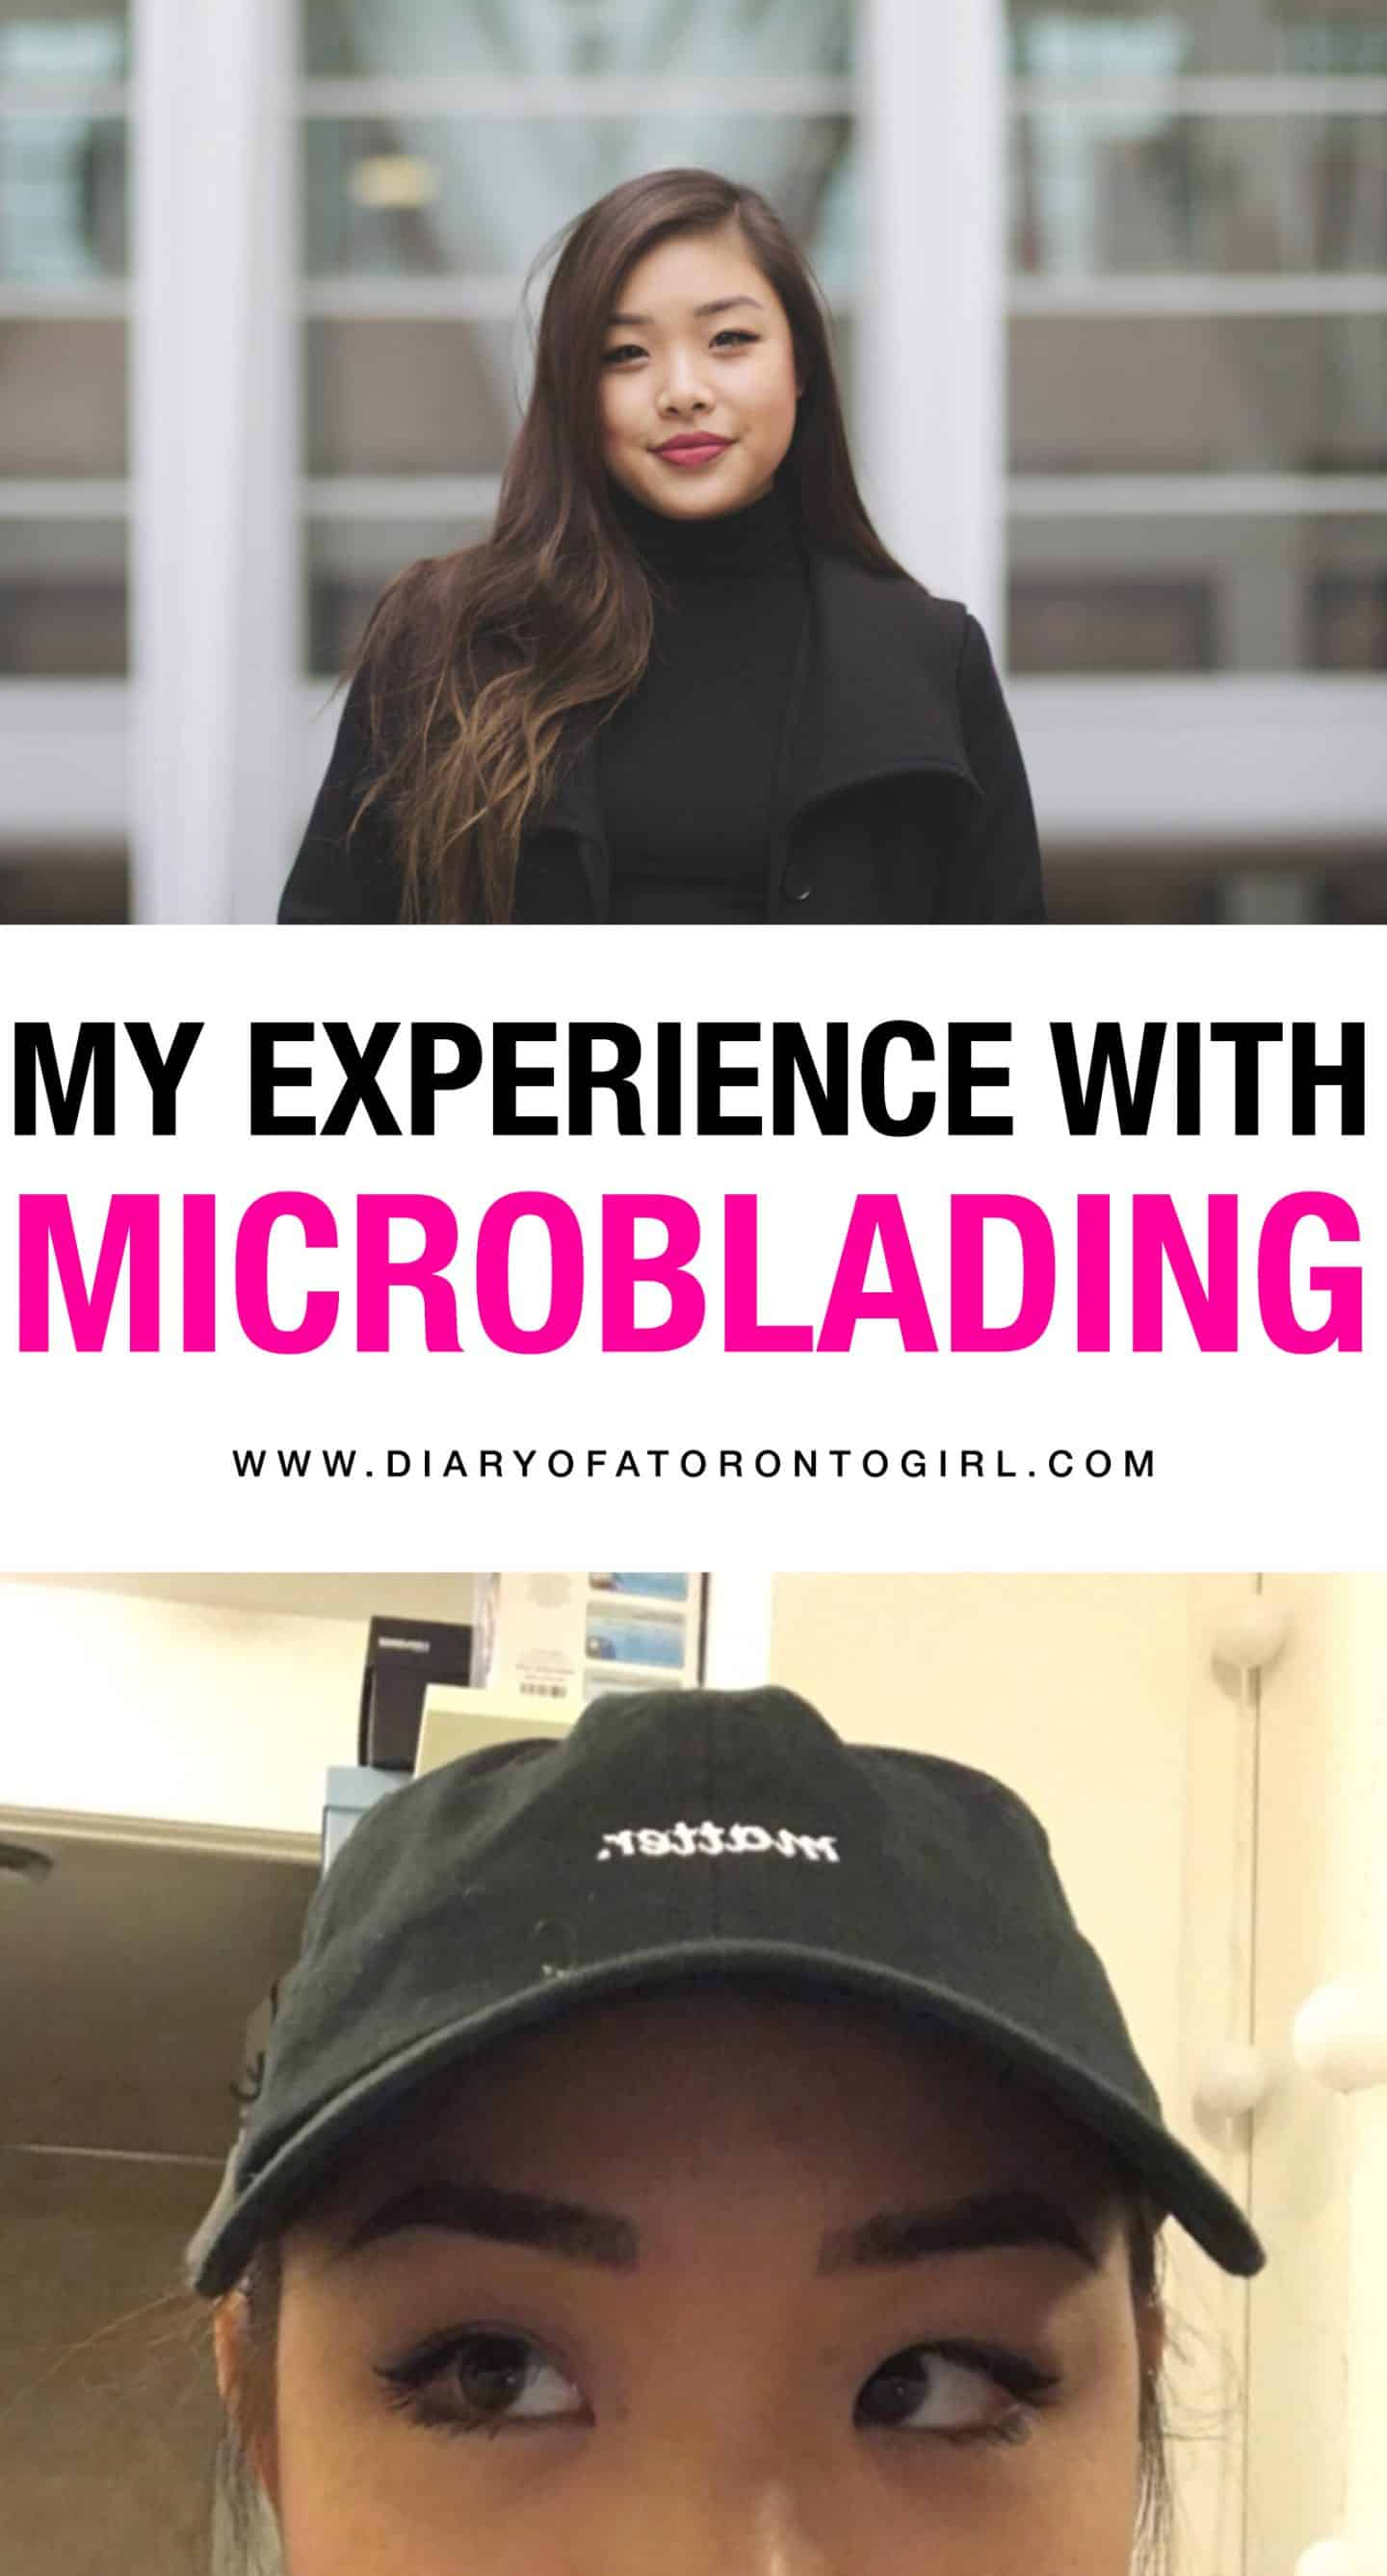 All about my microblading experience, including photos of the healing process, things to note about aftercare, and how they held up over time!